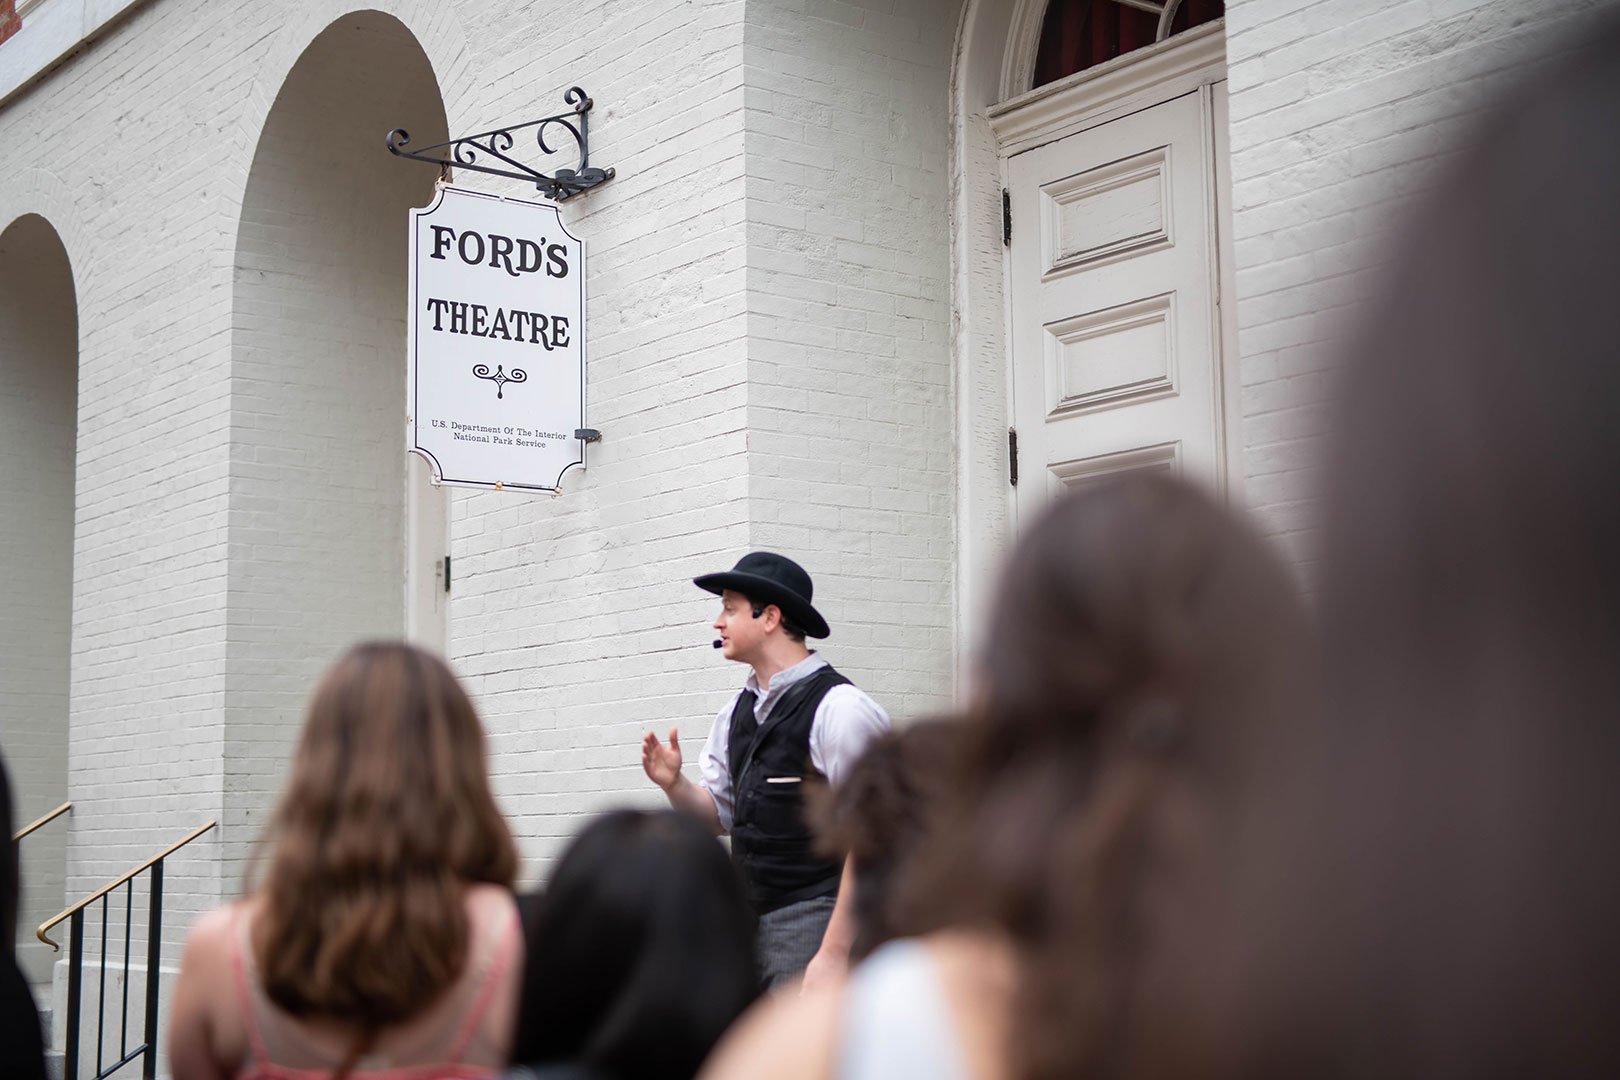 A group of young adults outside of Ford's Theatre watch a guide dressed as 1860s Washington Detective James McDevitt.